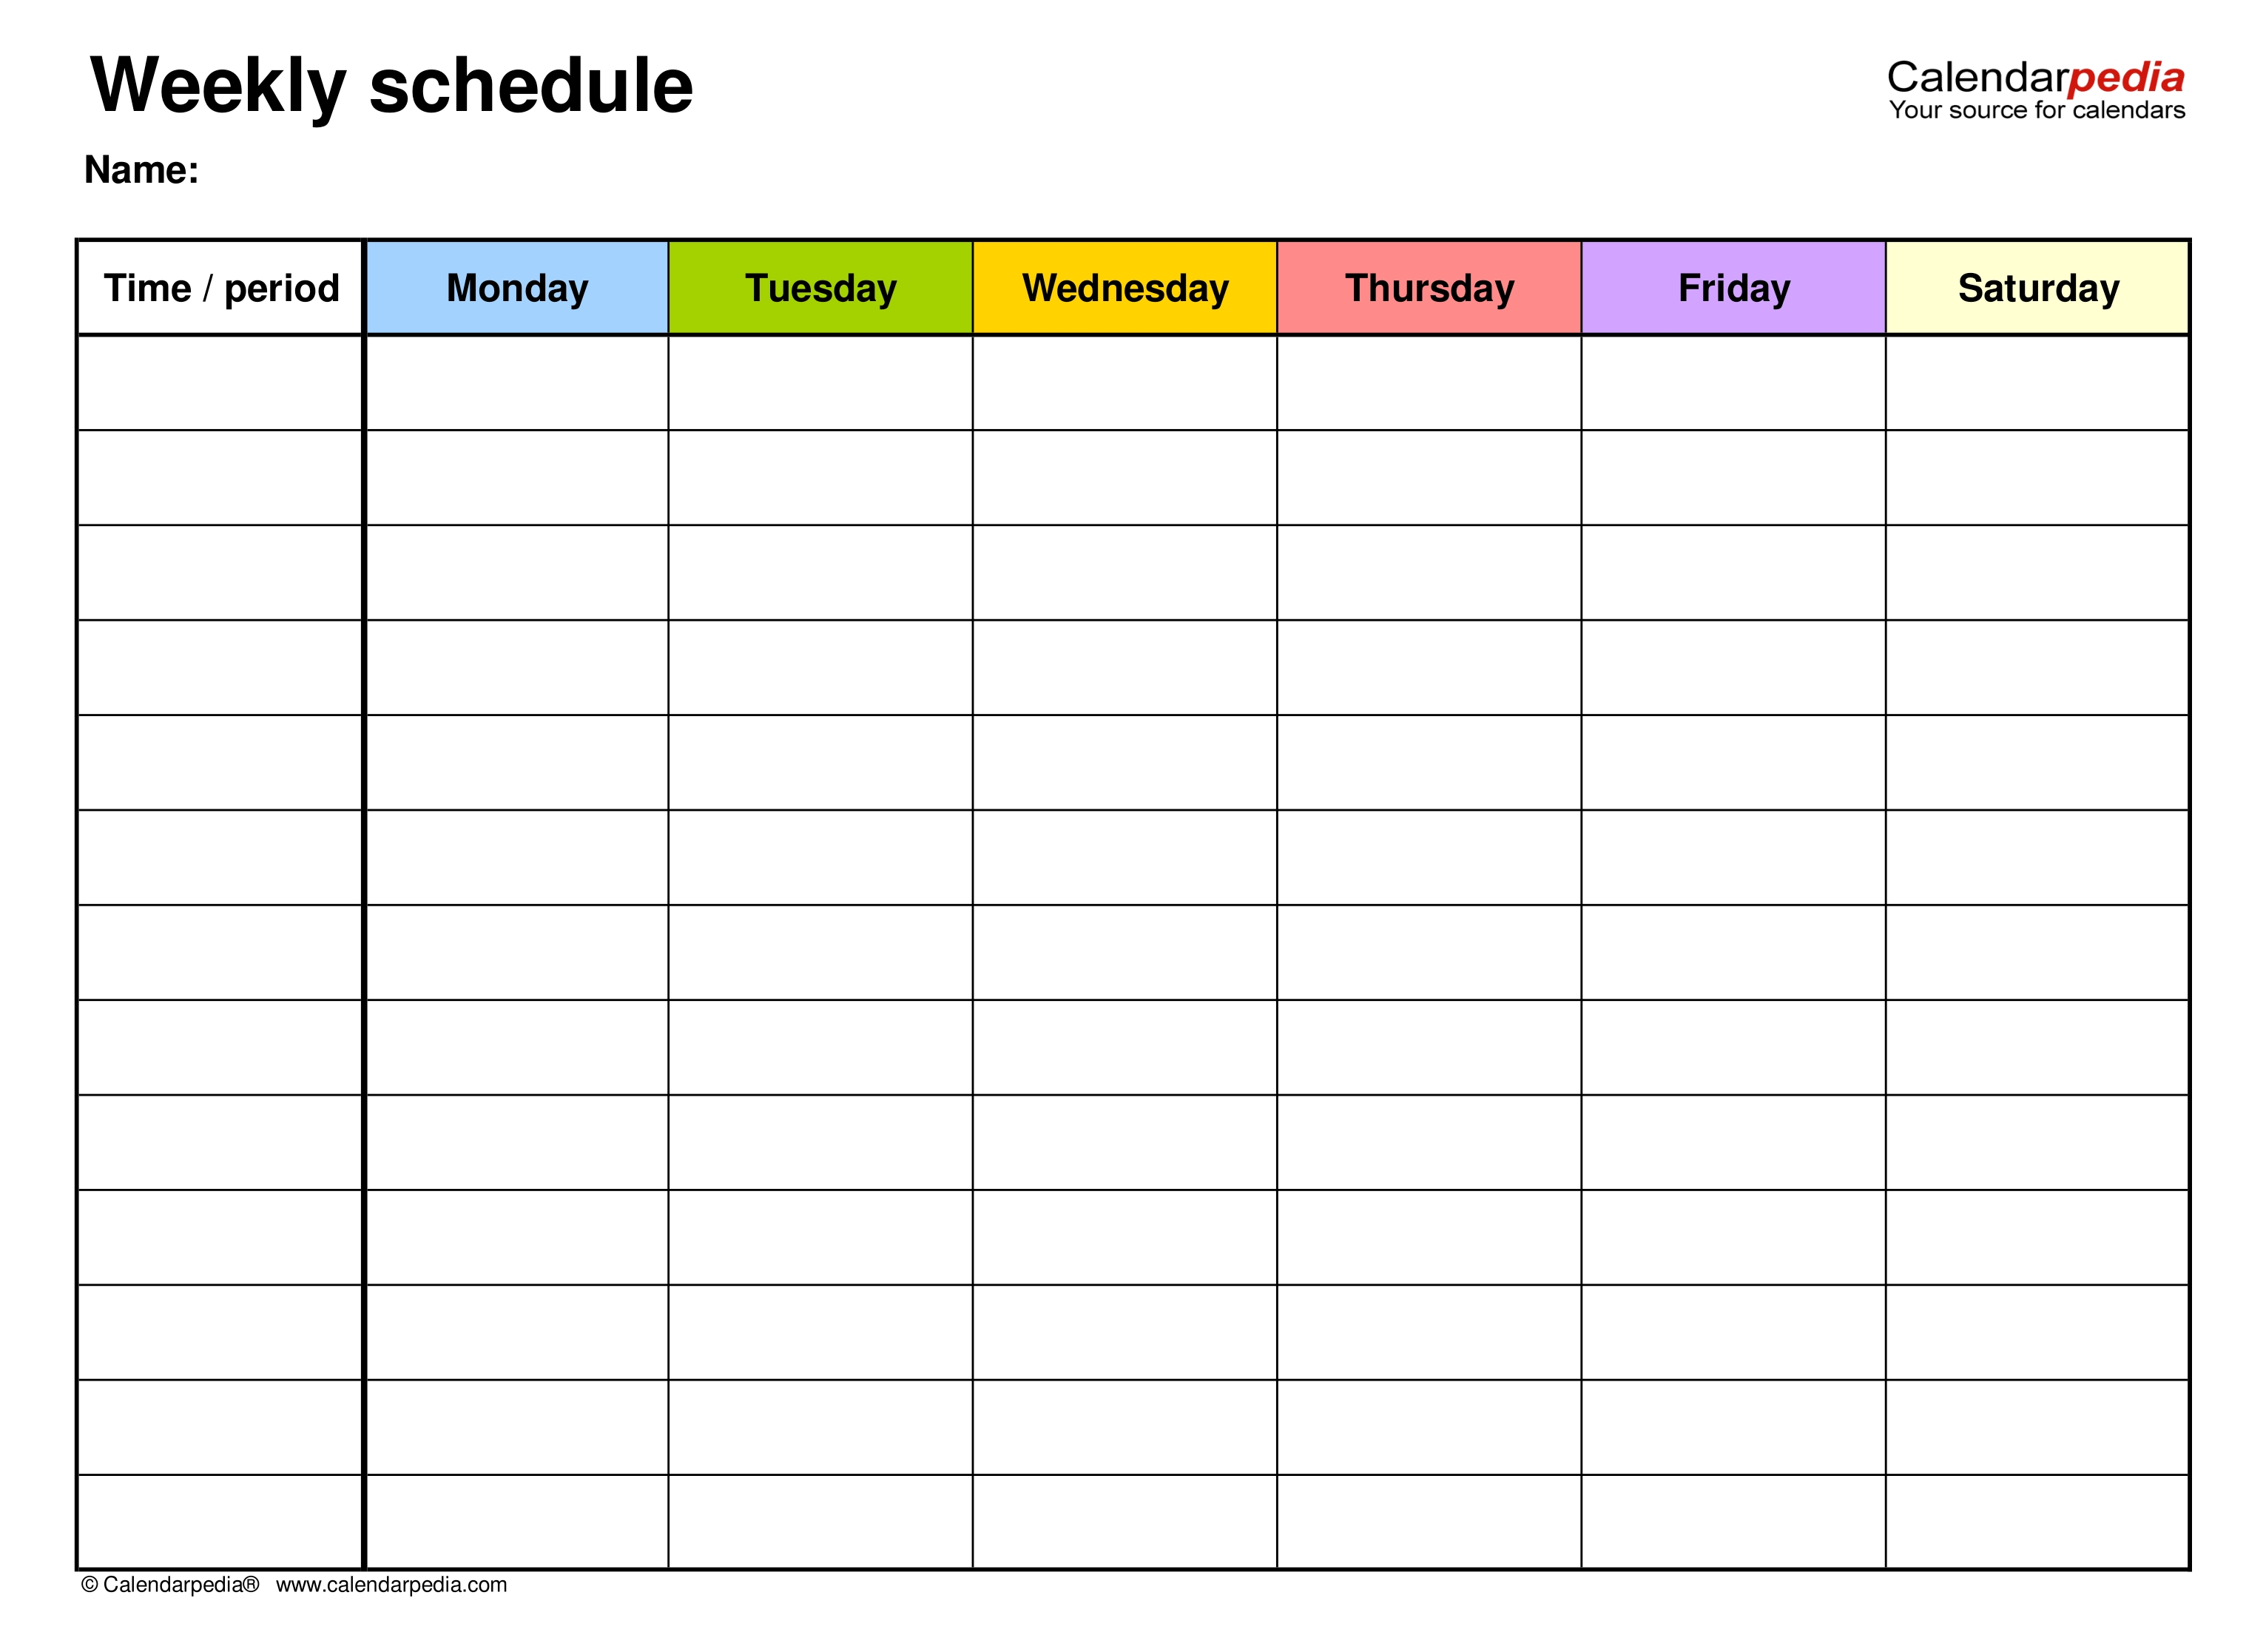 Free Weekly Schedule Templates For Pdf - 18 Templates with regard to Weekly Planner With Times Pdf